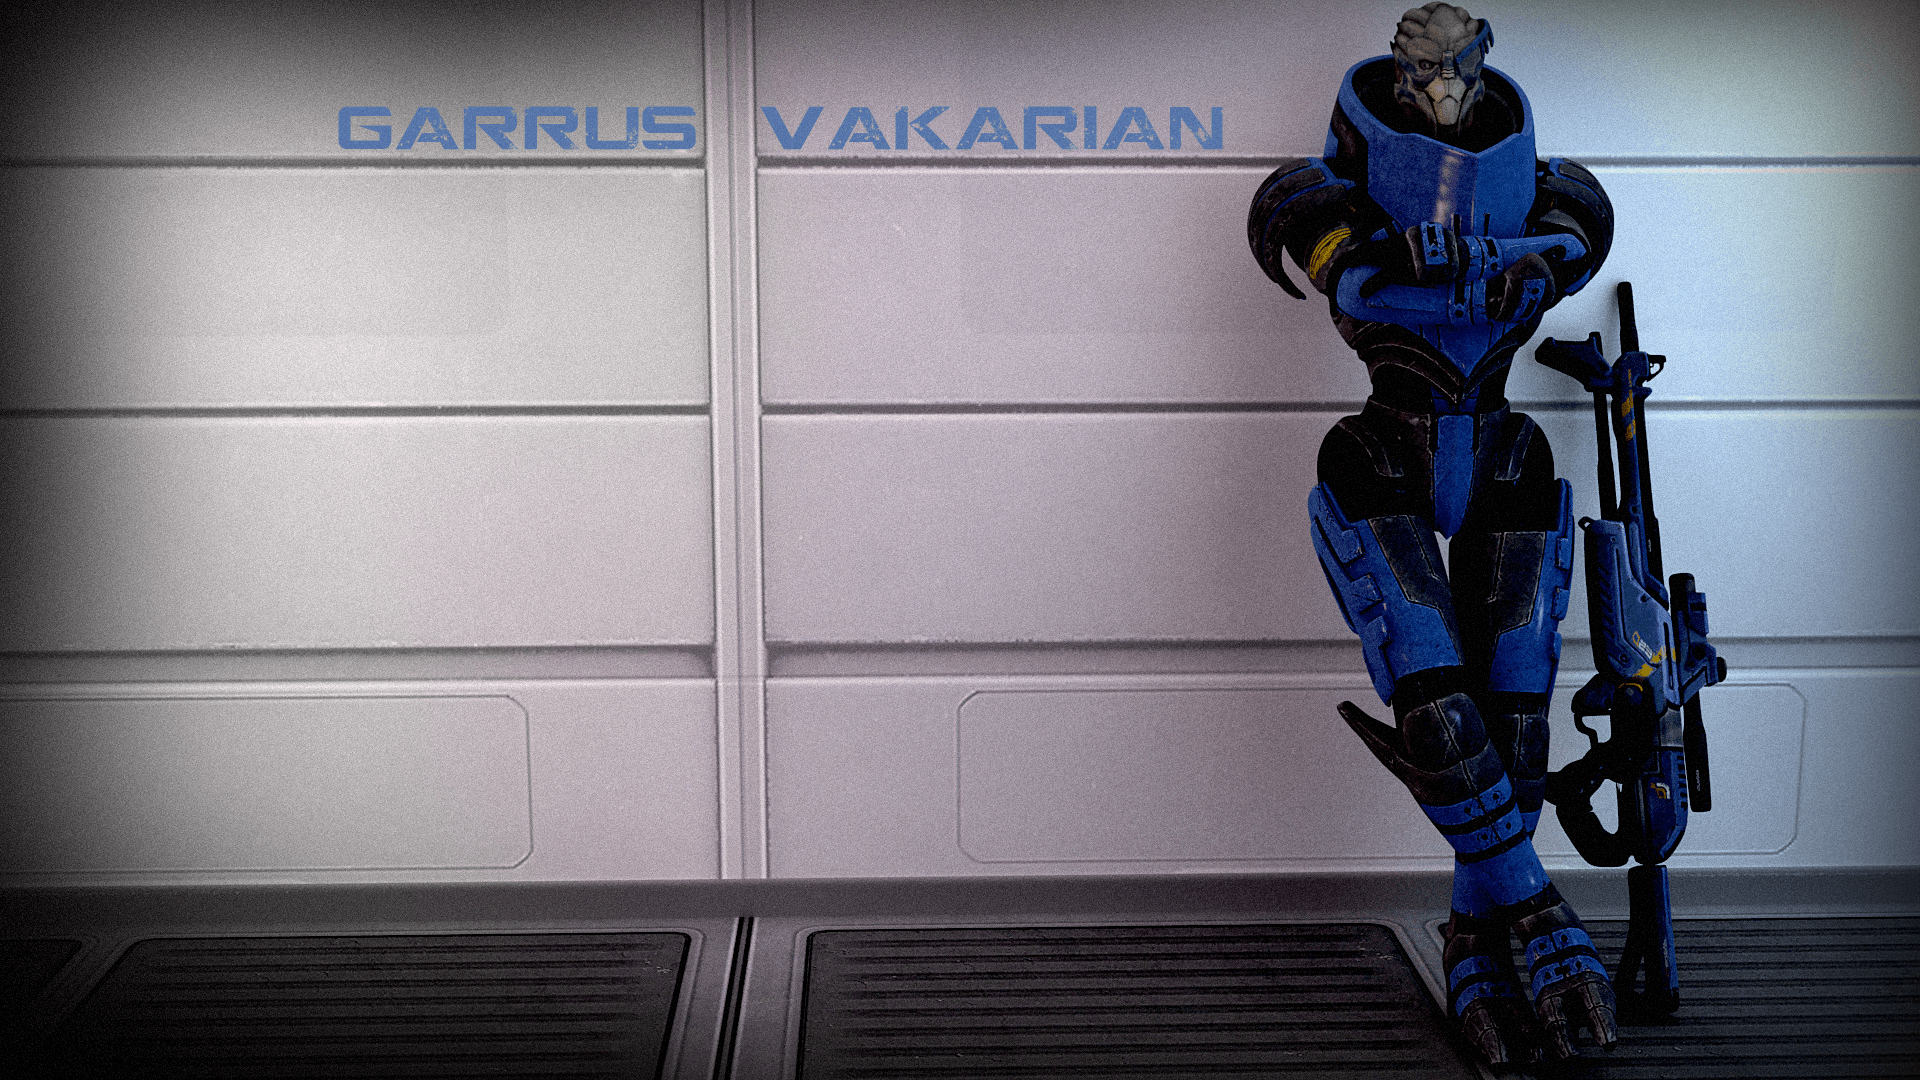 Videogame Wallpapers With Quotes Mass Effect Full Hd Wallpaper And Background Image